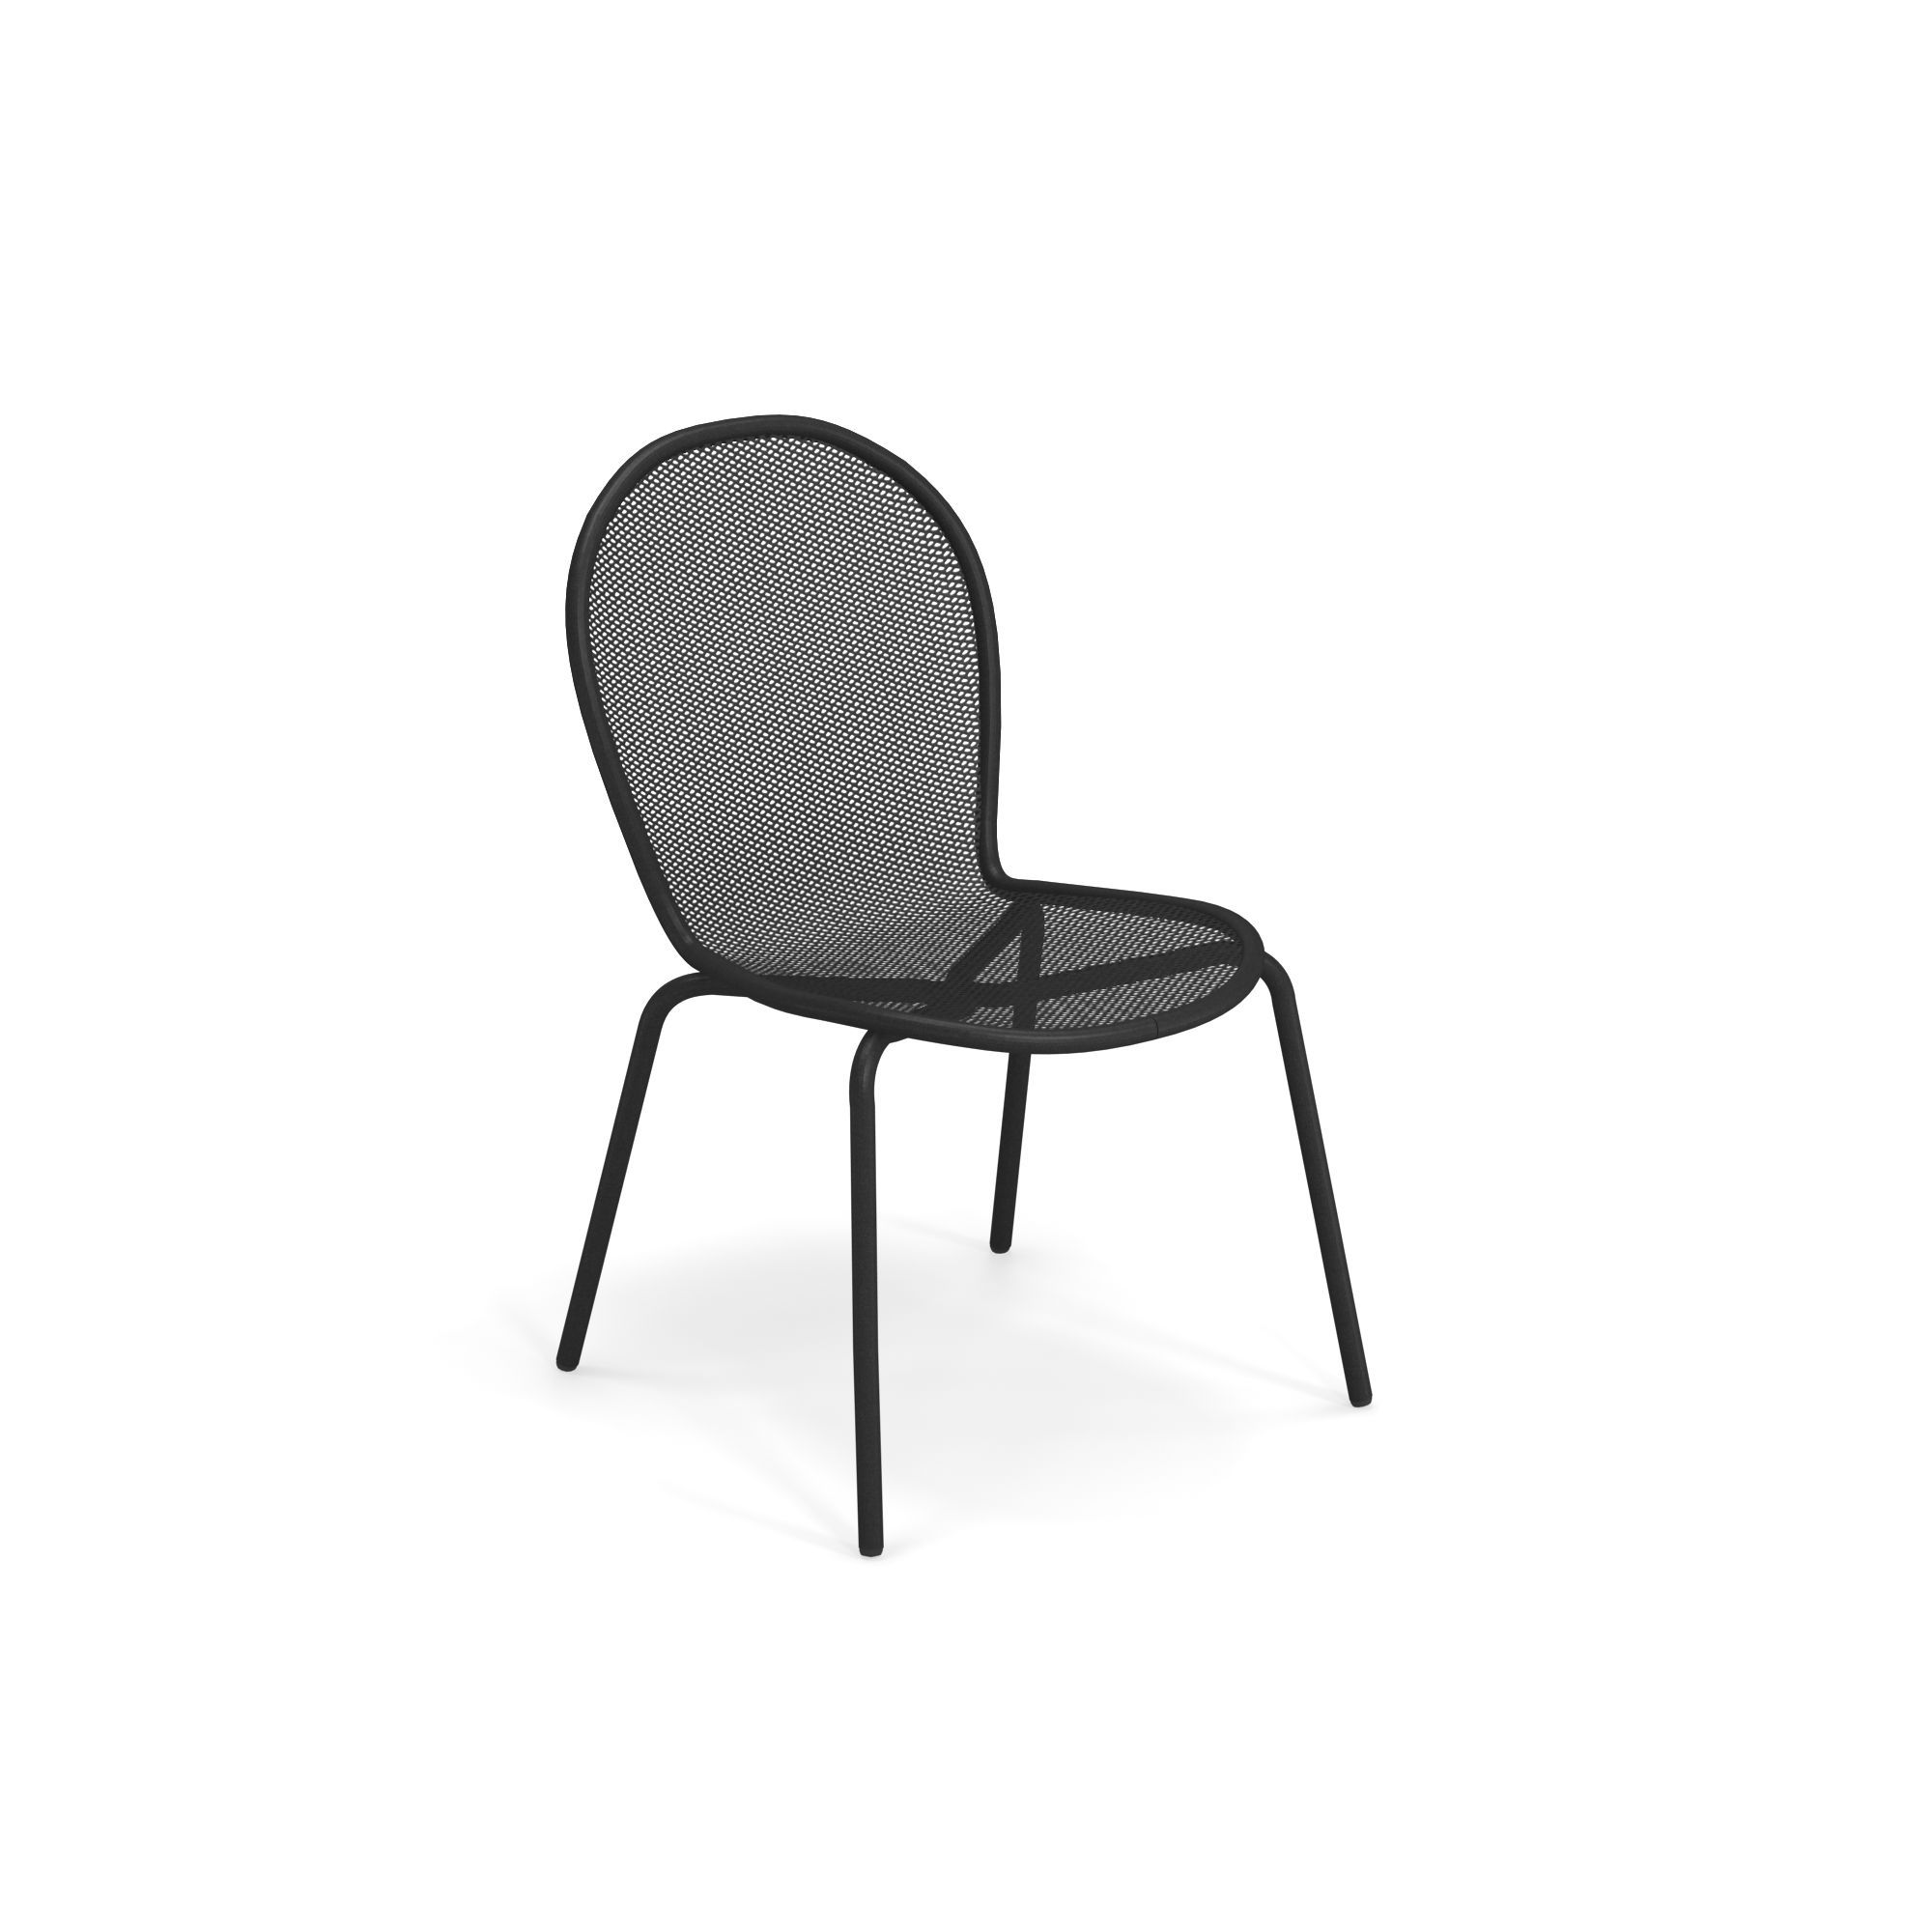 emuamericas, llc 111-24 chair, side, stacking, outdoor